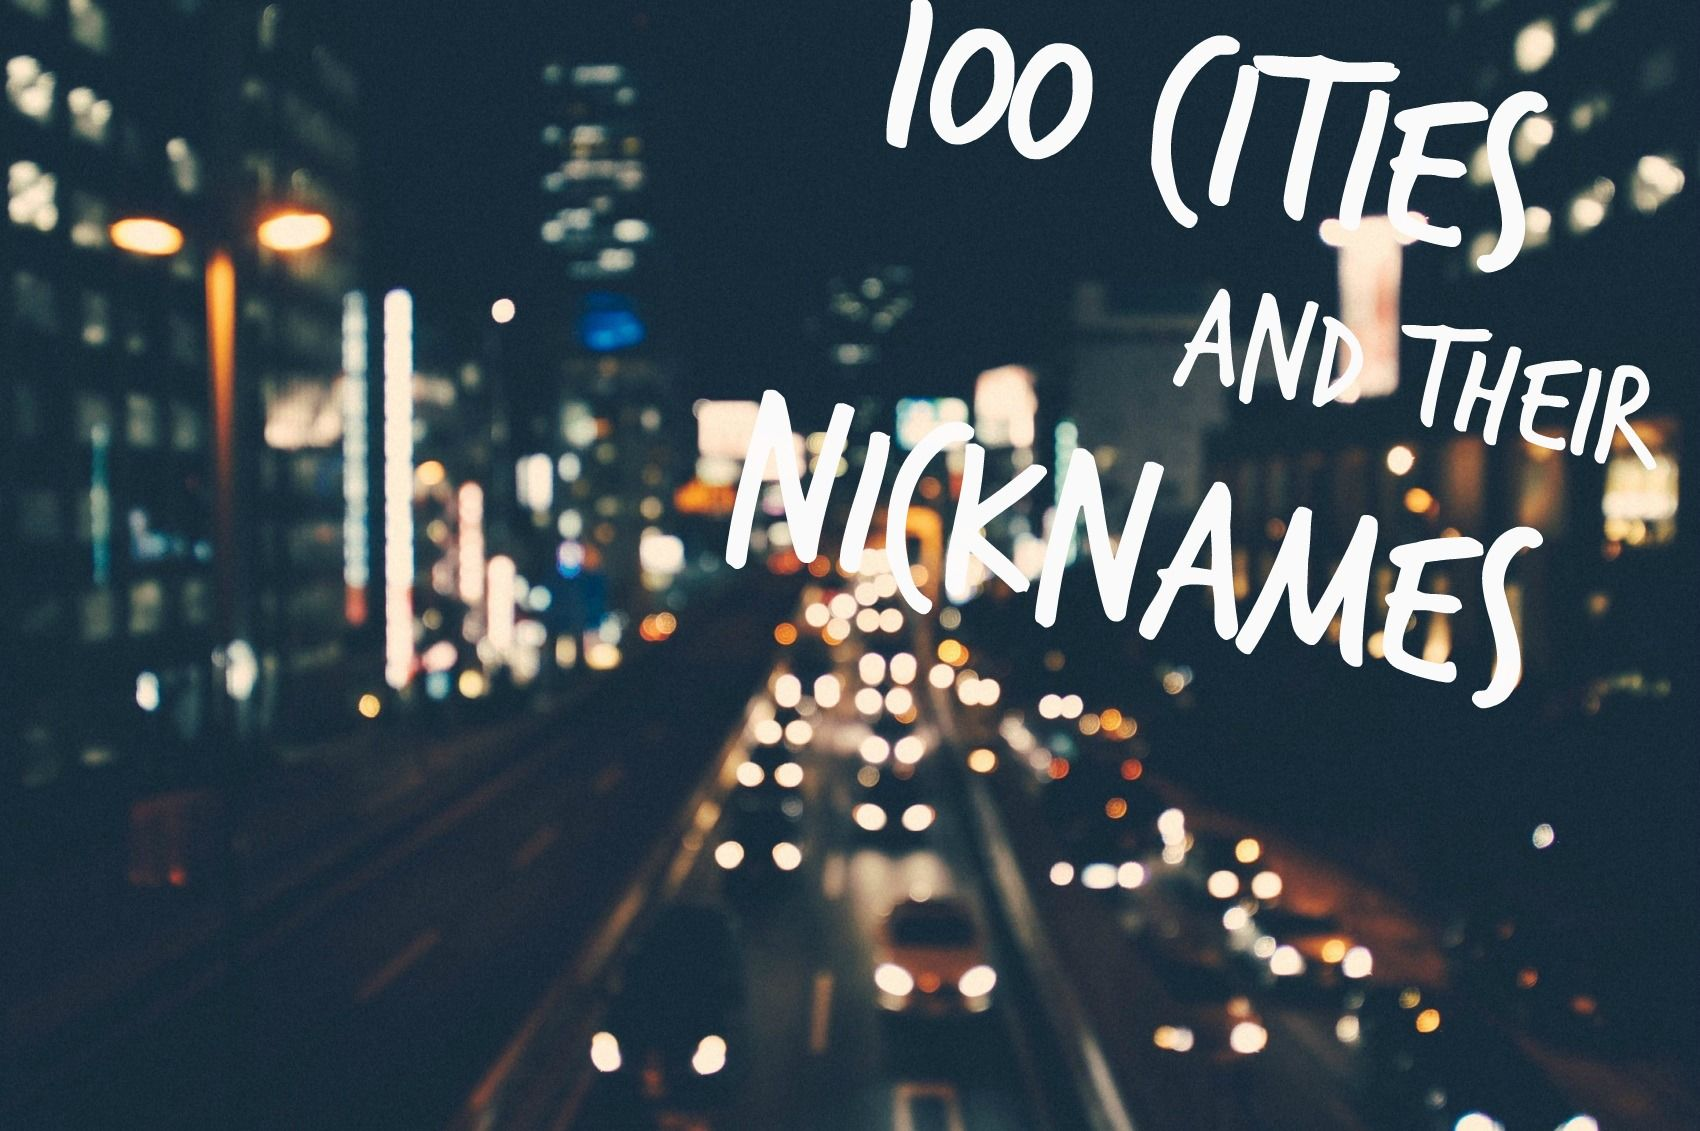 Cities Nicknames